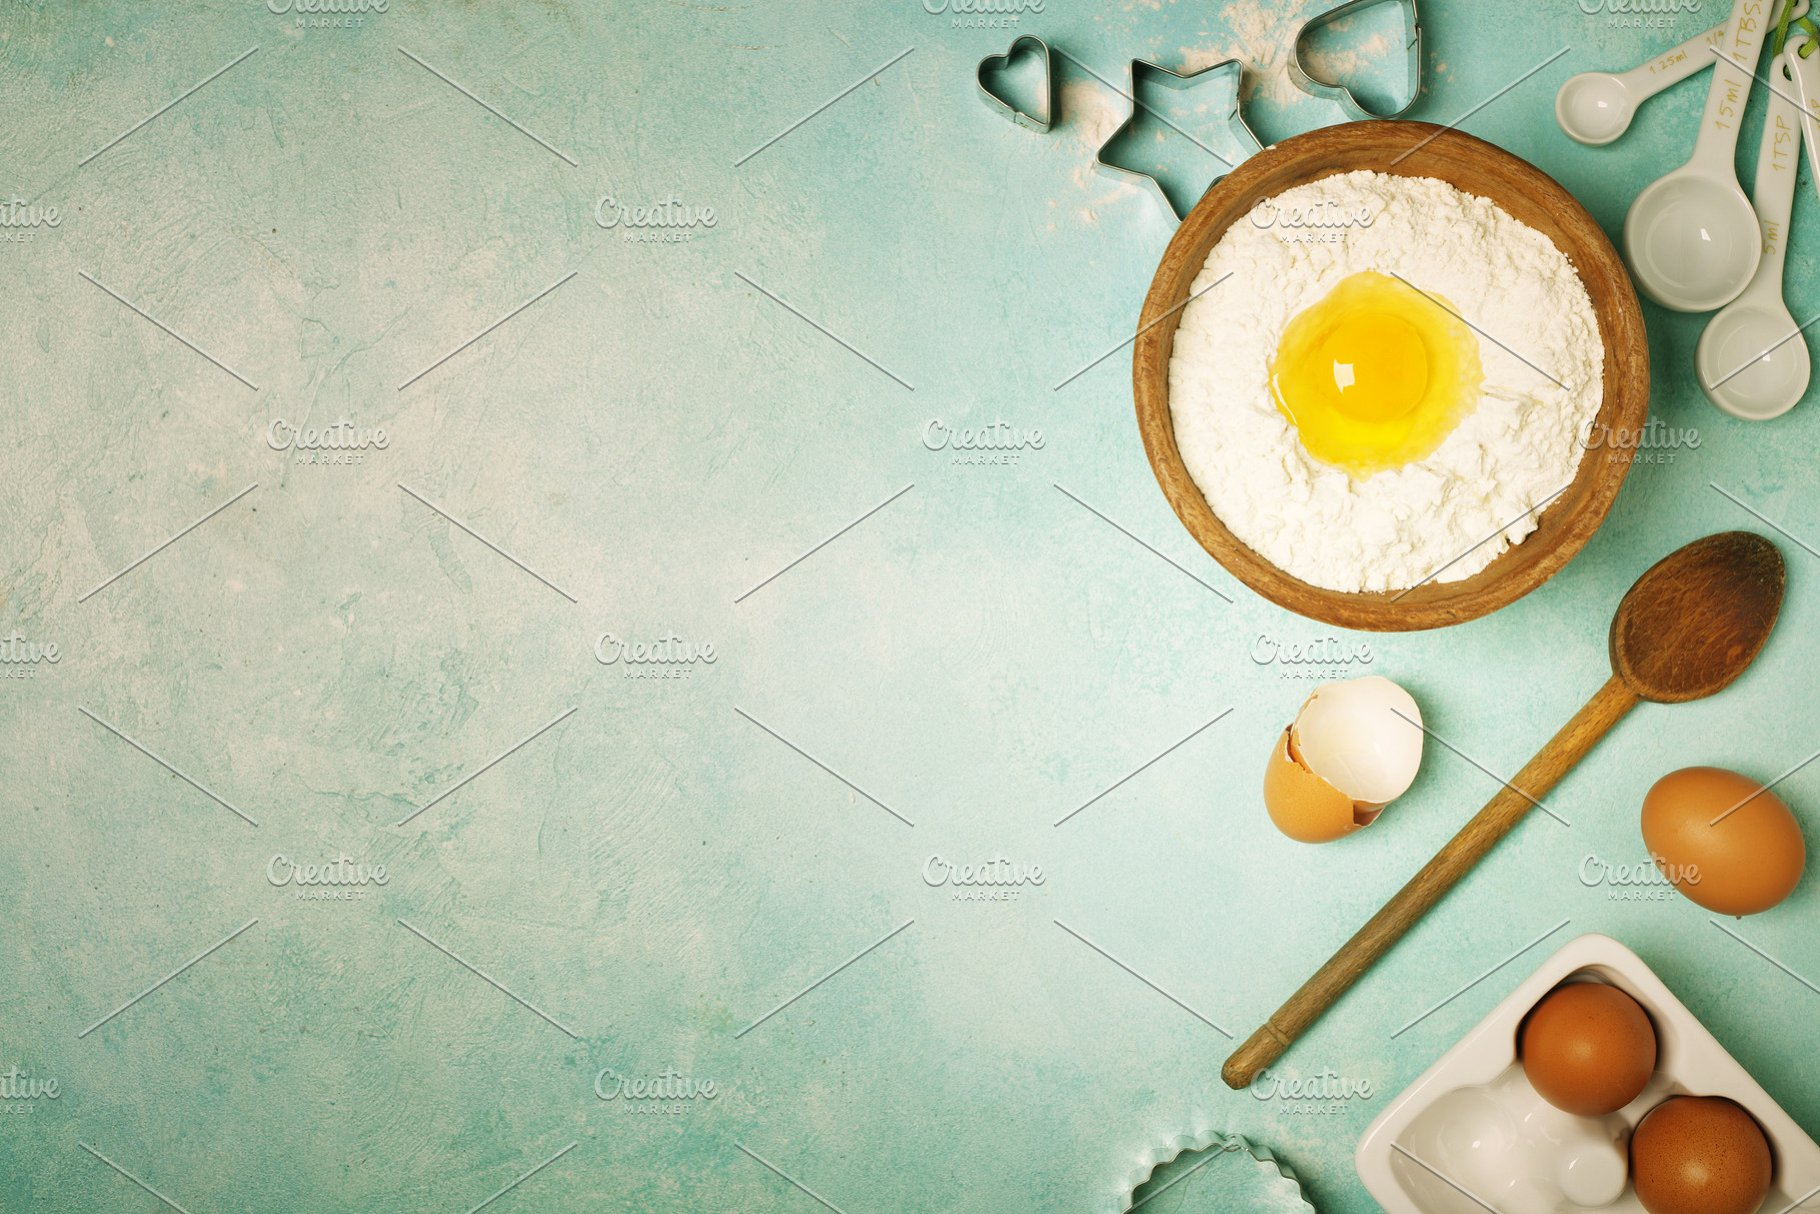 Baking background High Quality Food Images Creative Market 1820x1214